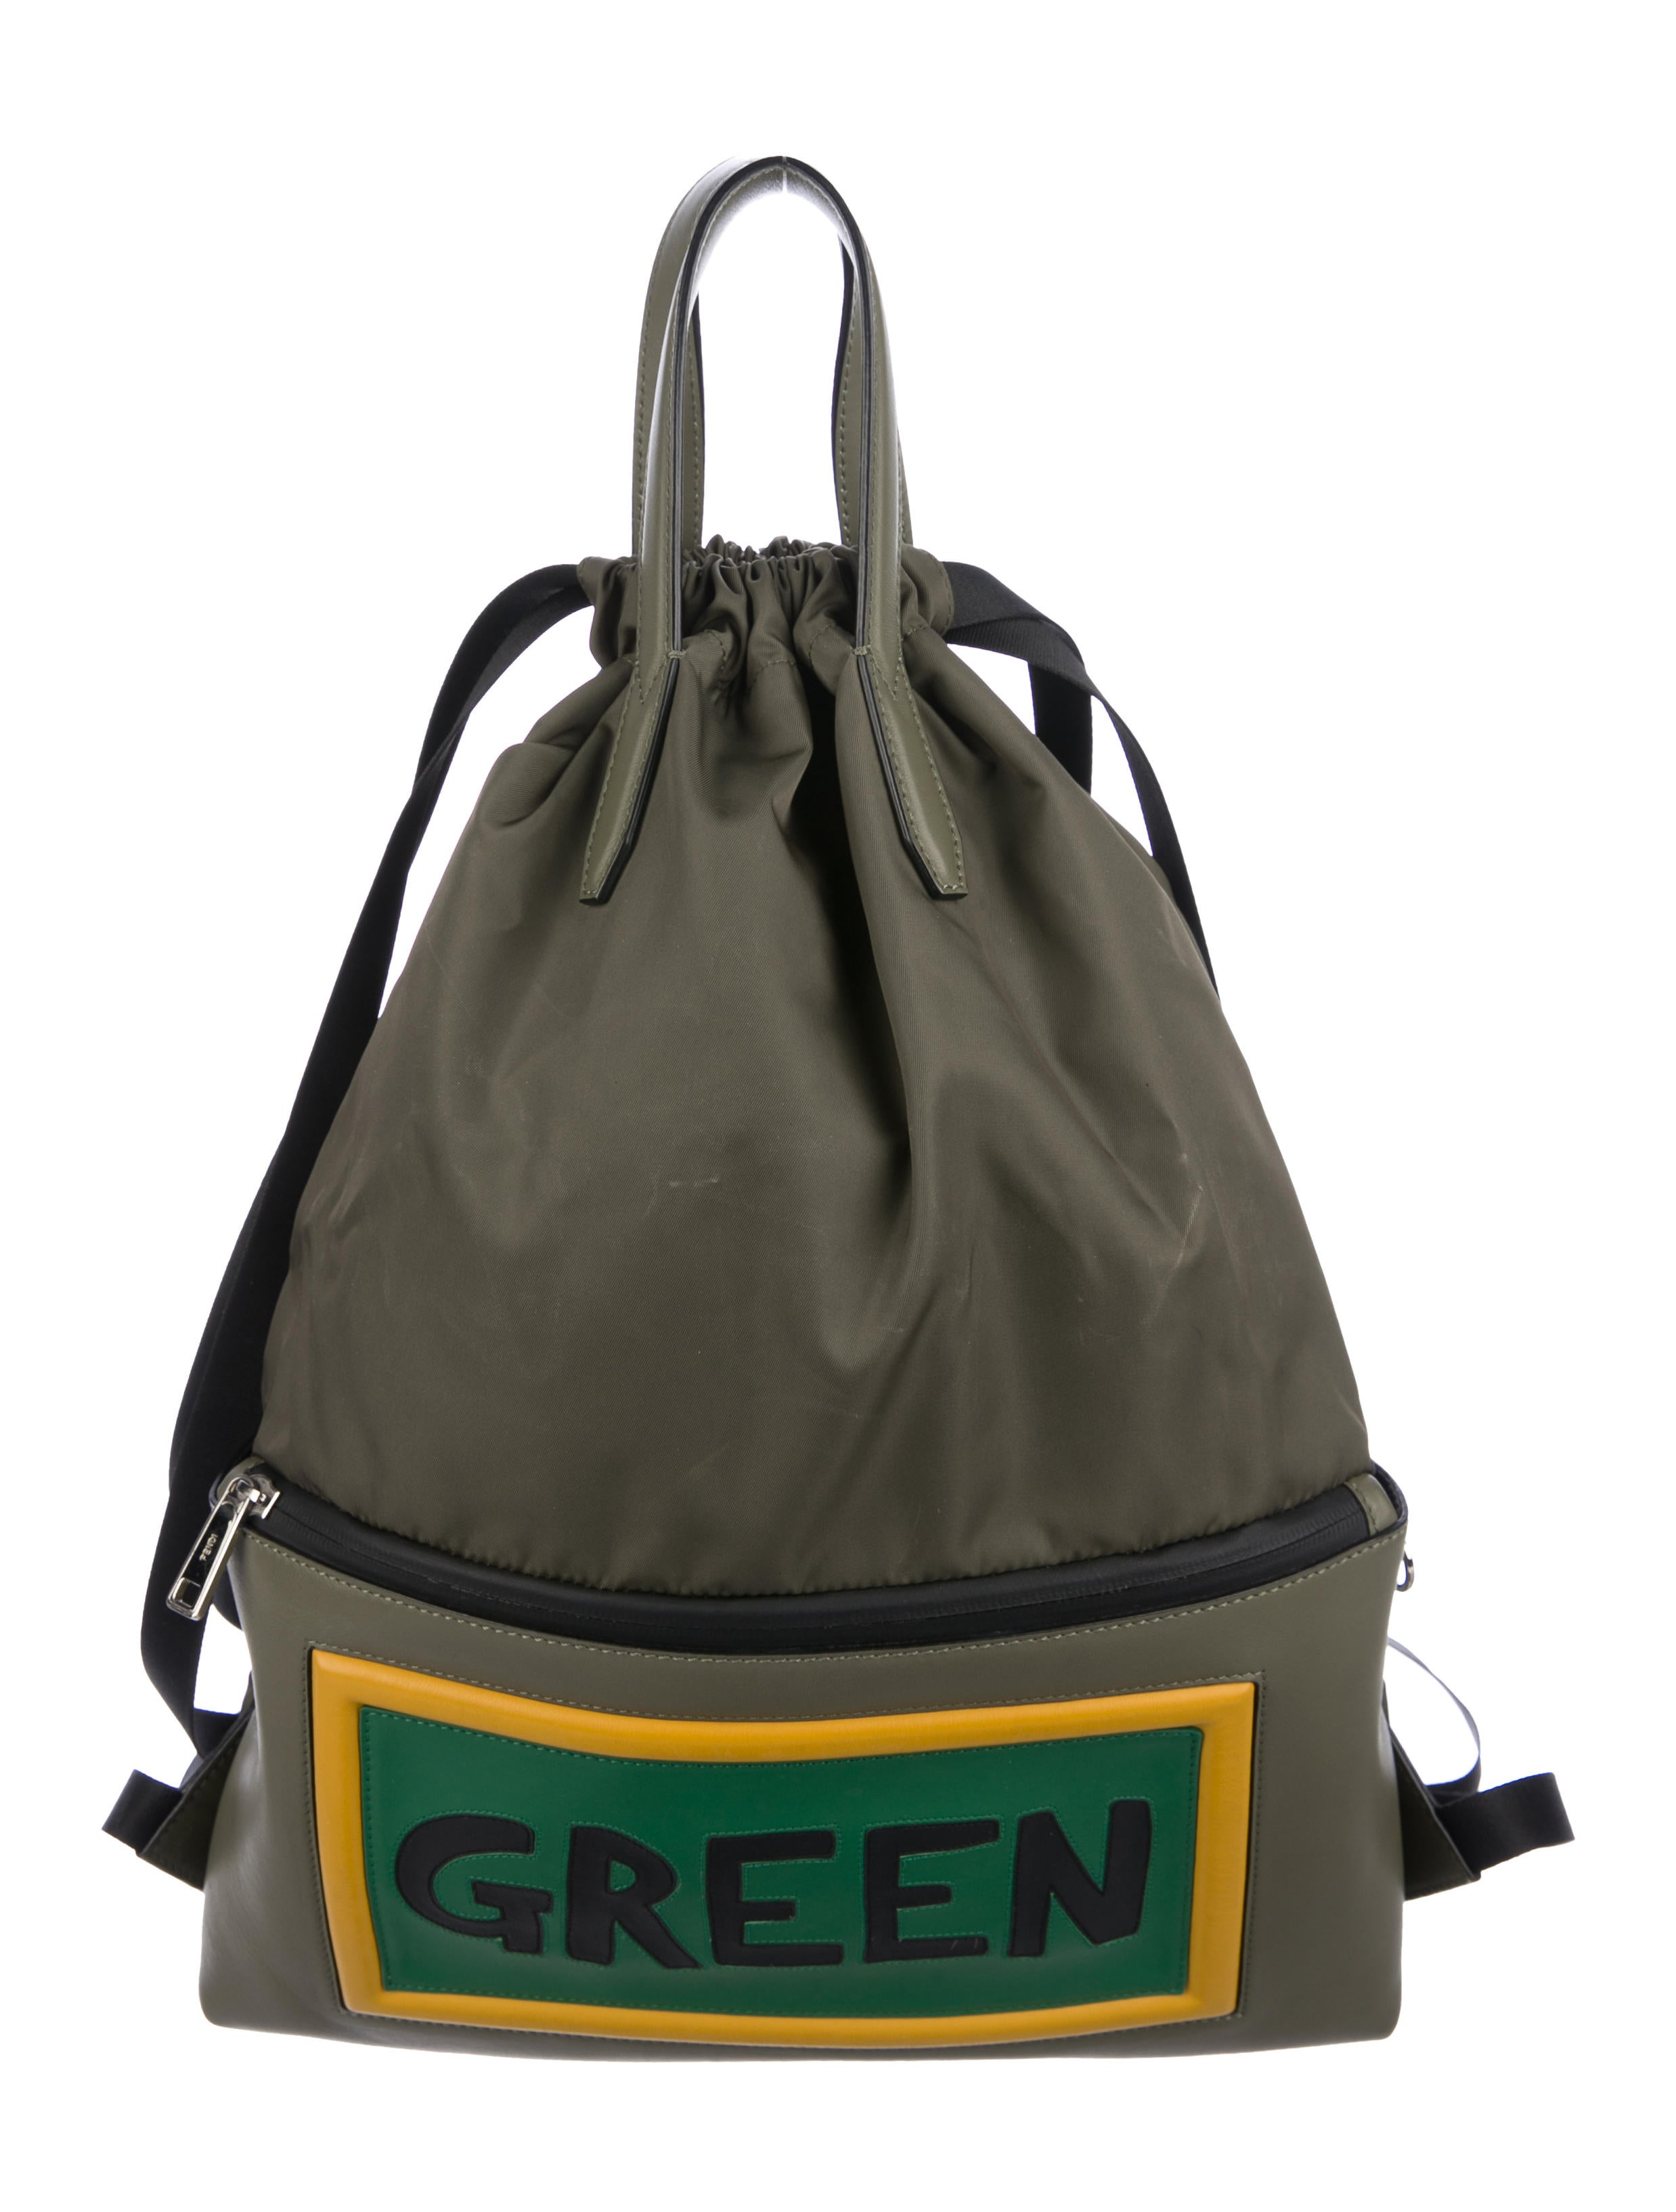 067cf6411243 Fendi Green Leather-Trimmed Drawstring Backpack - Bags - FEN79123 ...